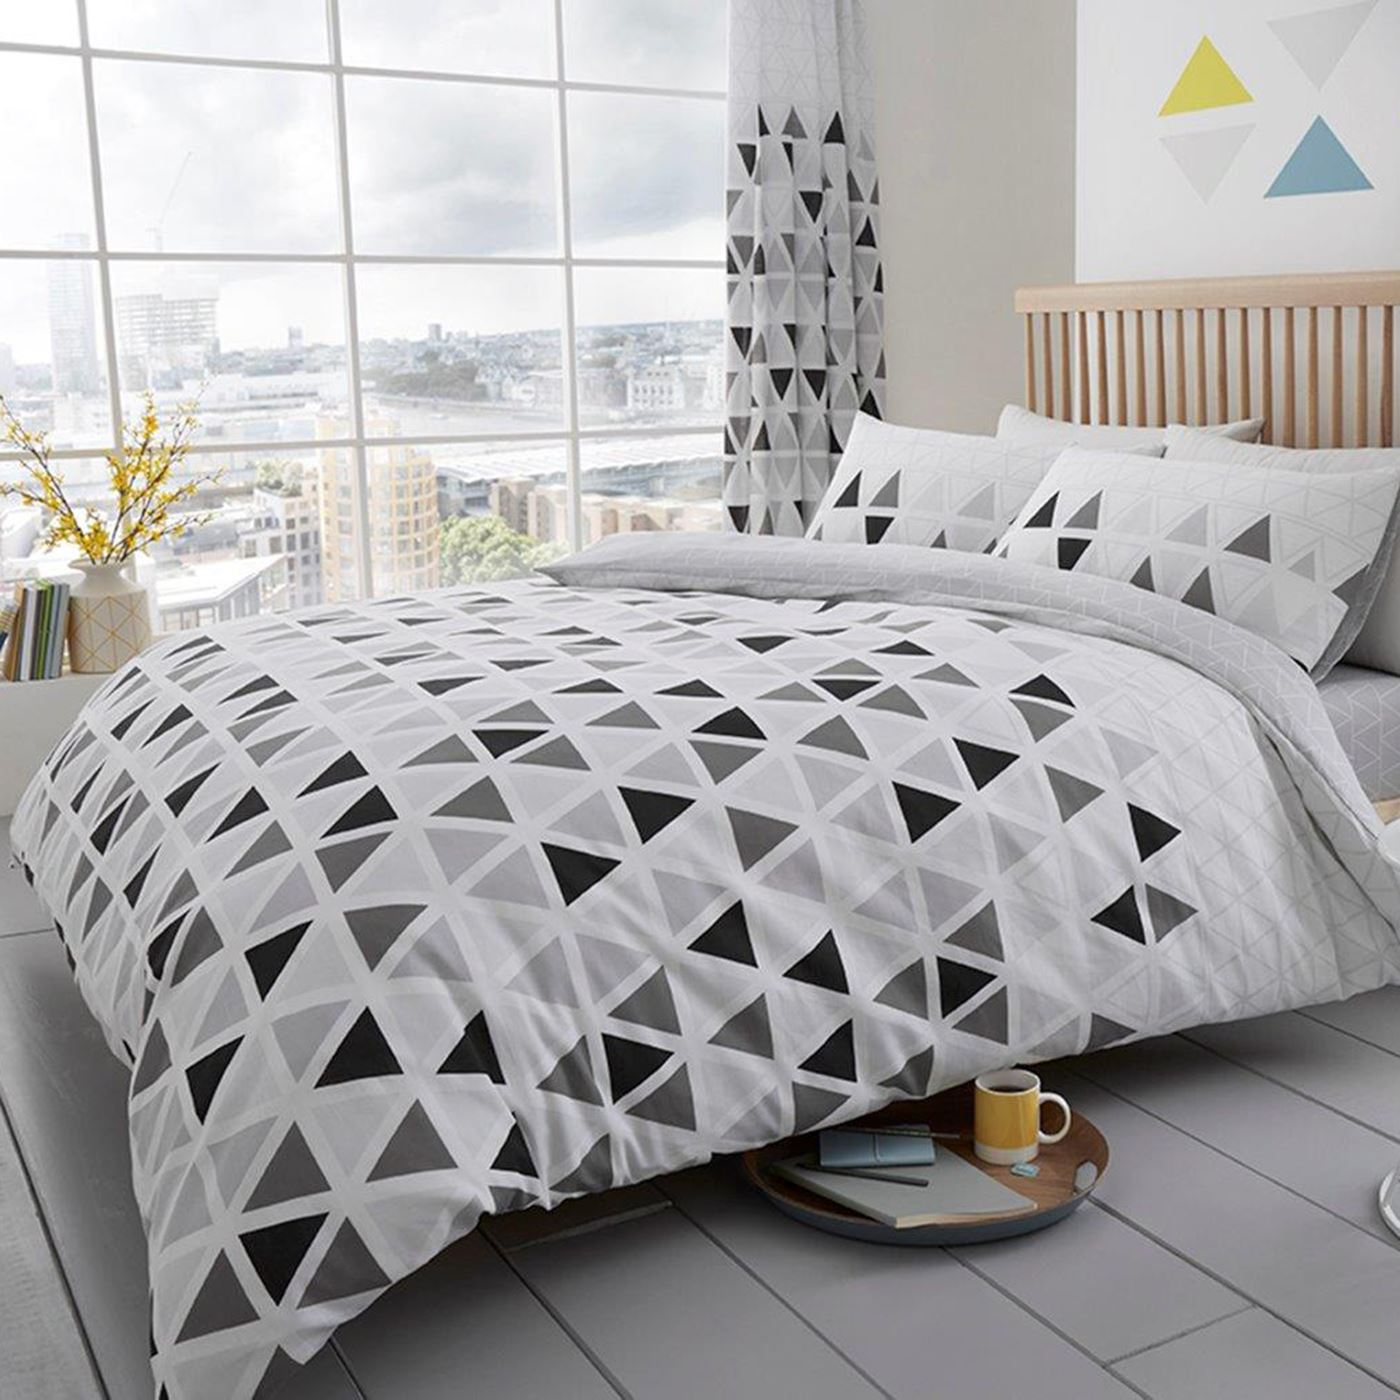 set sets your house king design covers harbor cover amazon belcourt california bedroom duvet alluring for dimensions com